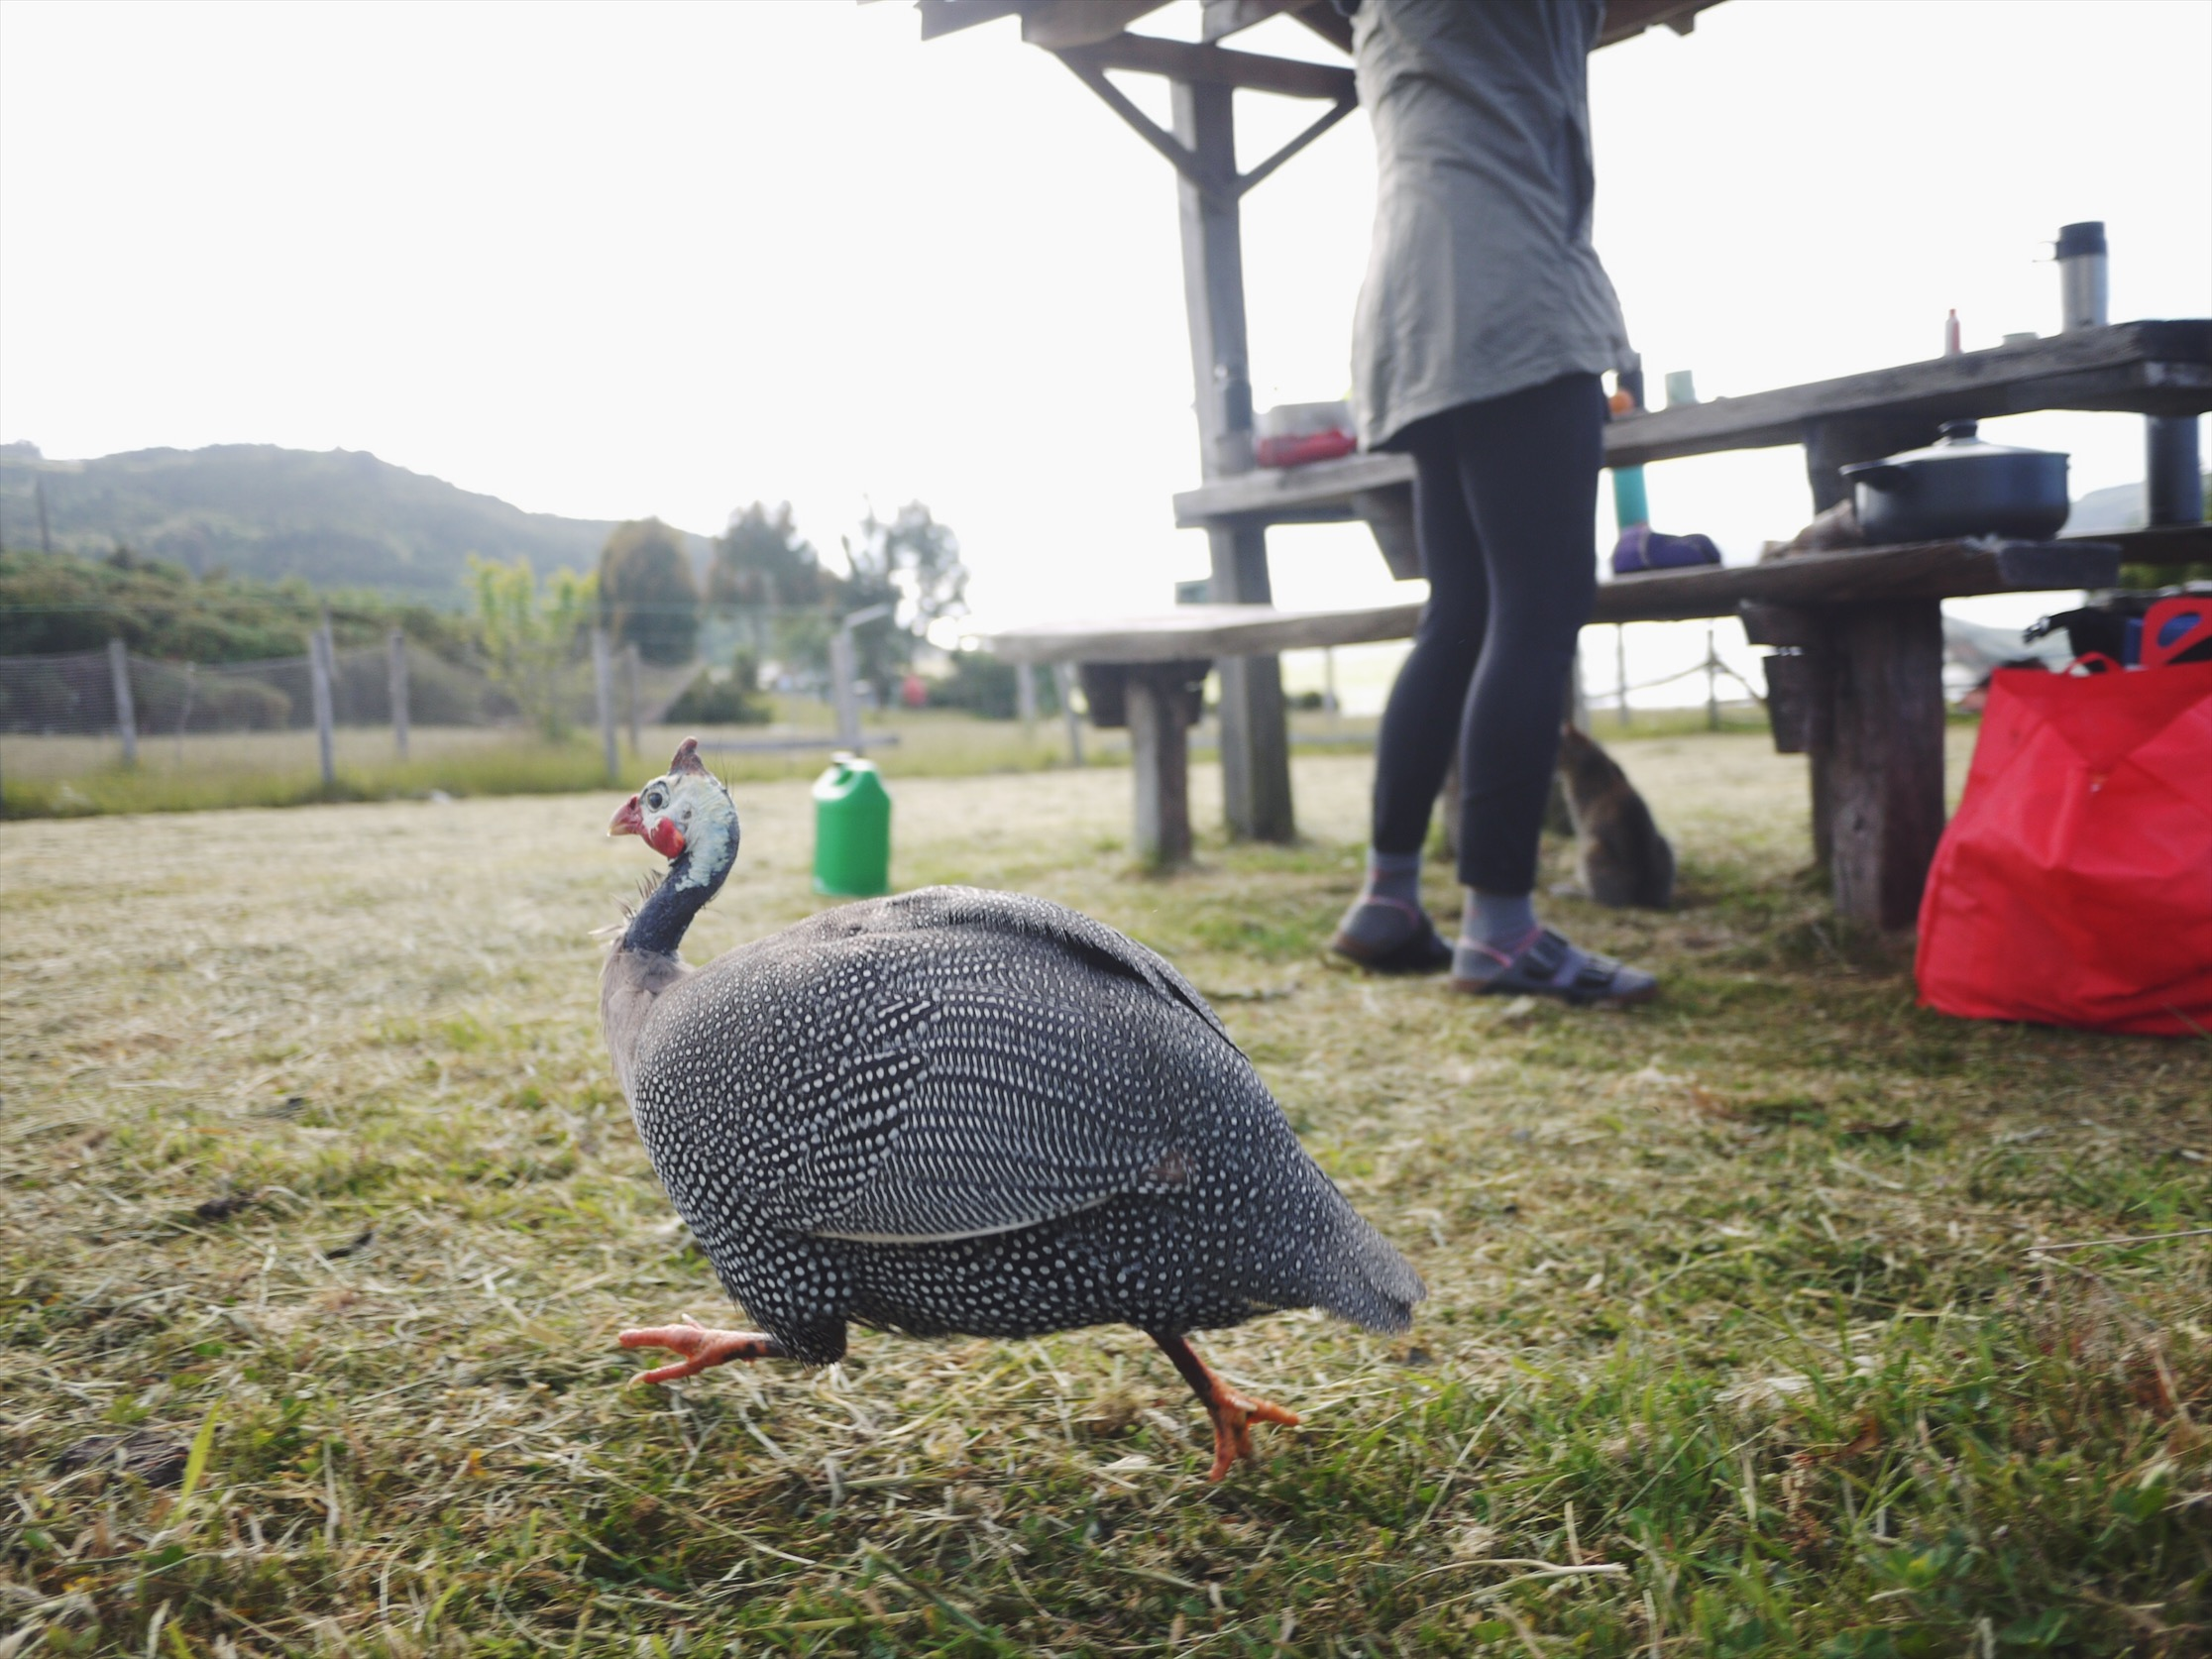 Guinea Fowl (domestic) as captured by our resident amateur birder. AKA guy chasing chickens around the yard with the camera at his feet.